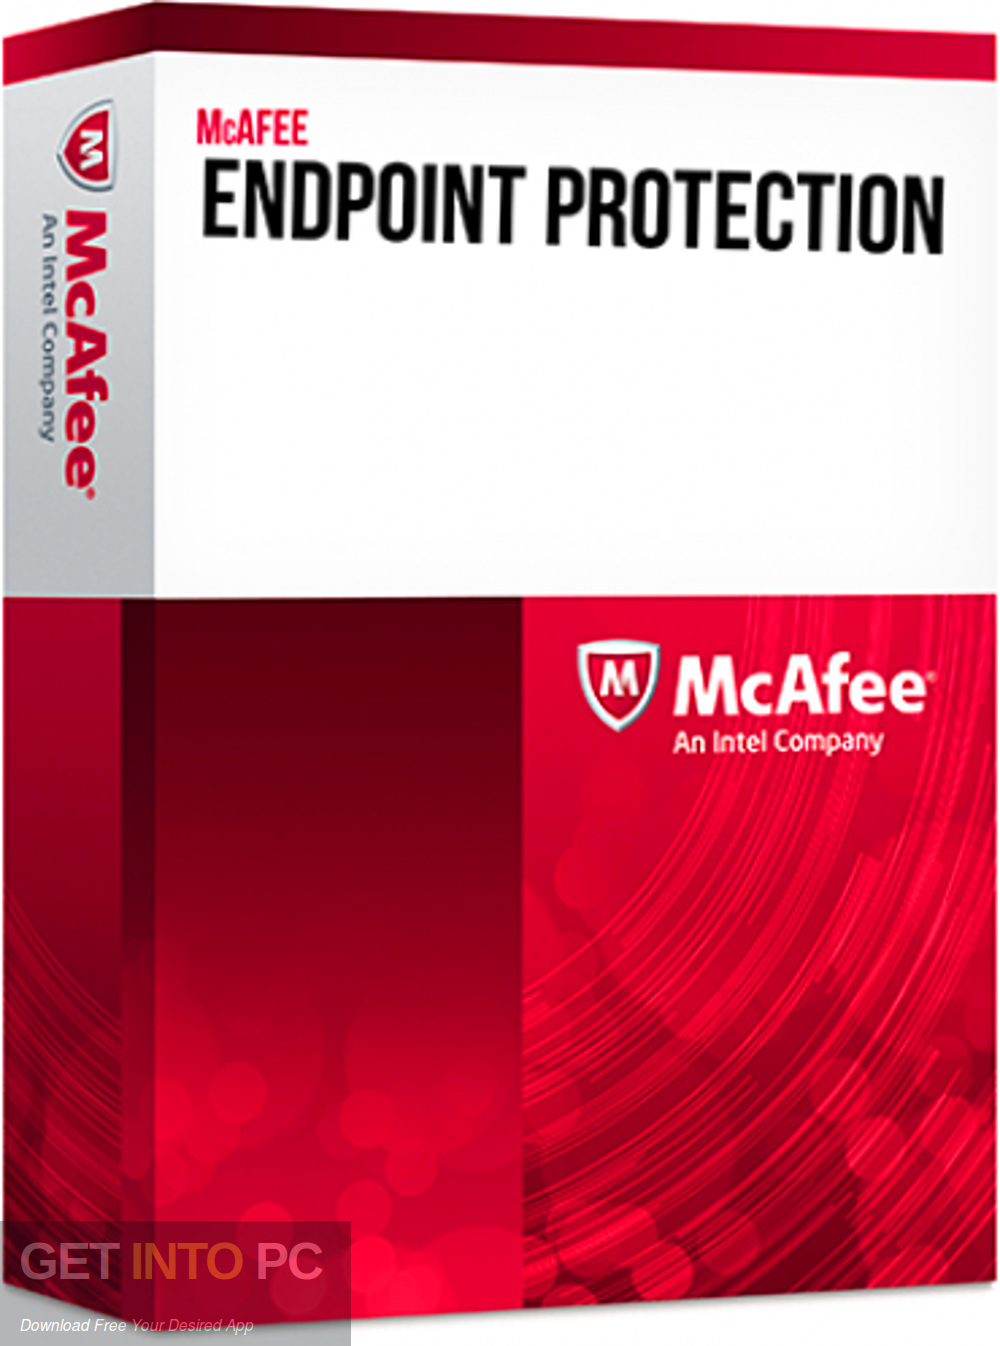 McAfee Endpoint Security 2020 Free Download